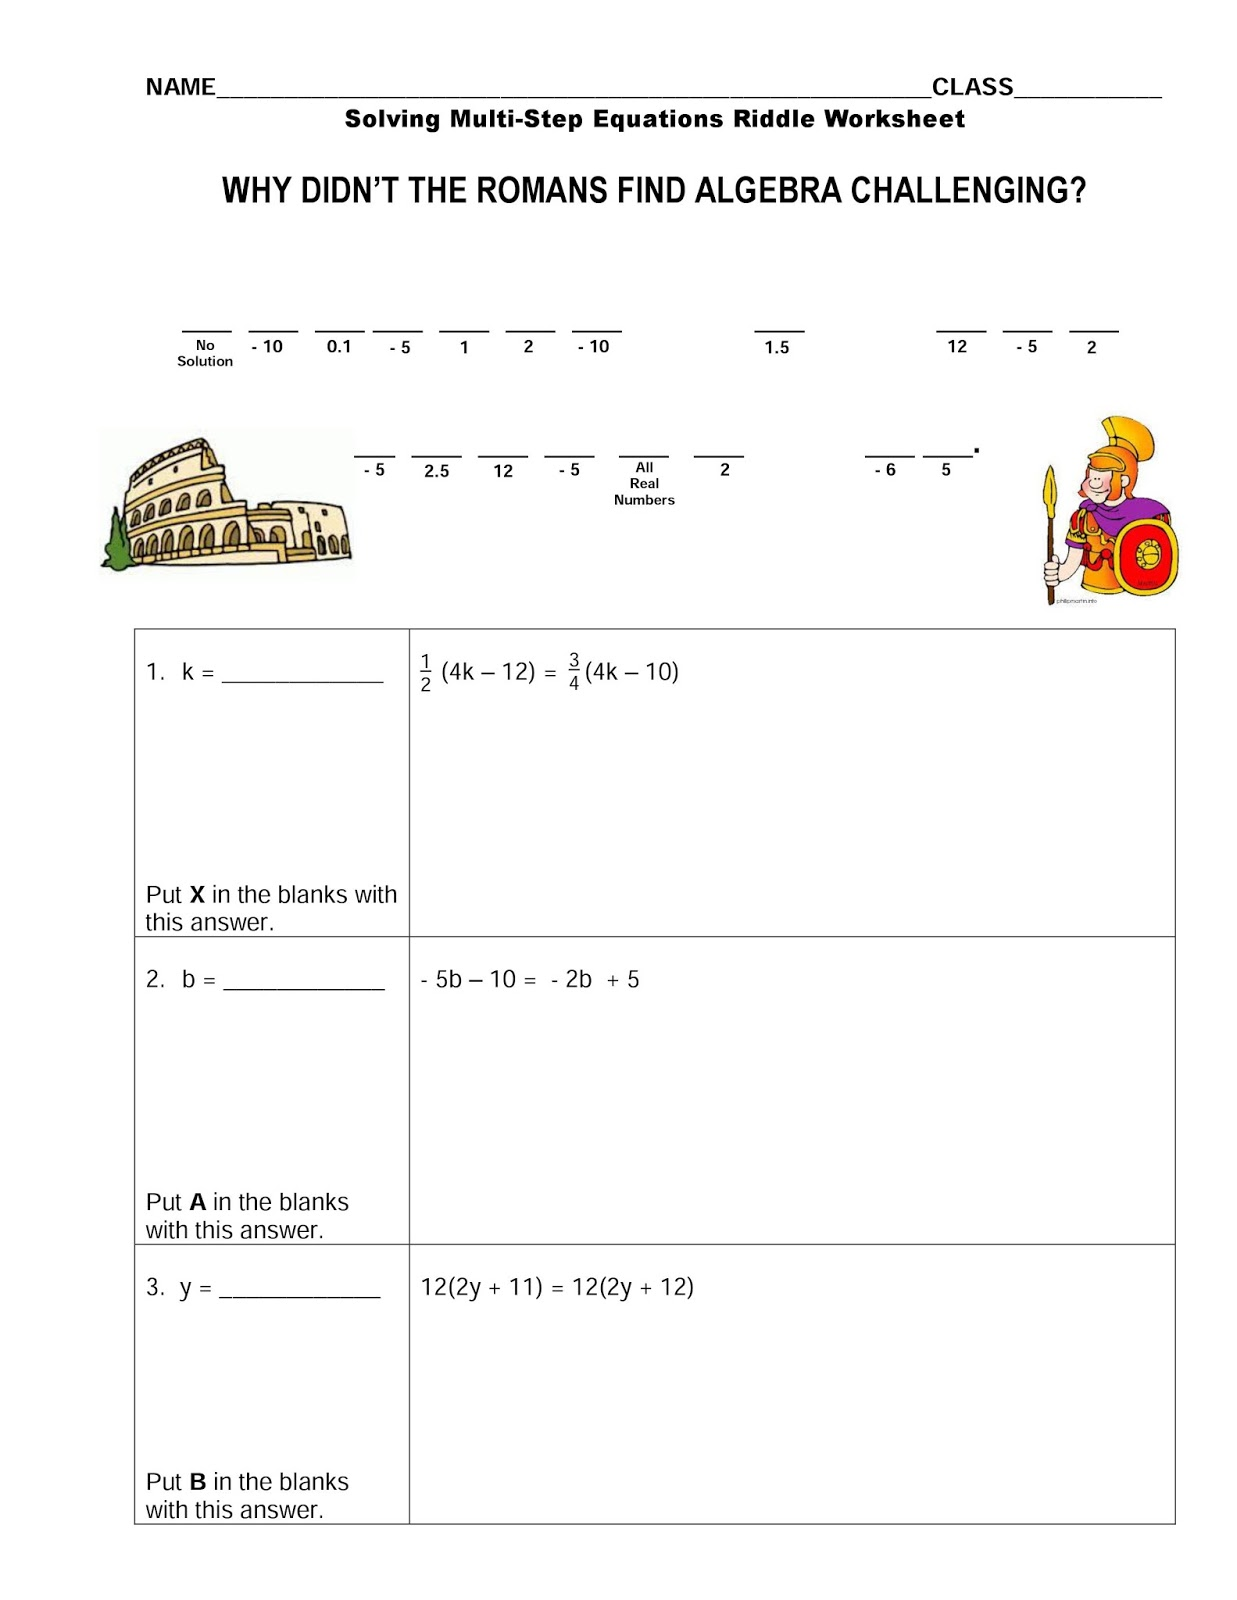 Solving Two Step Equations Puzzle Worksheet